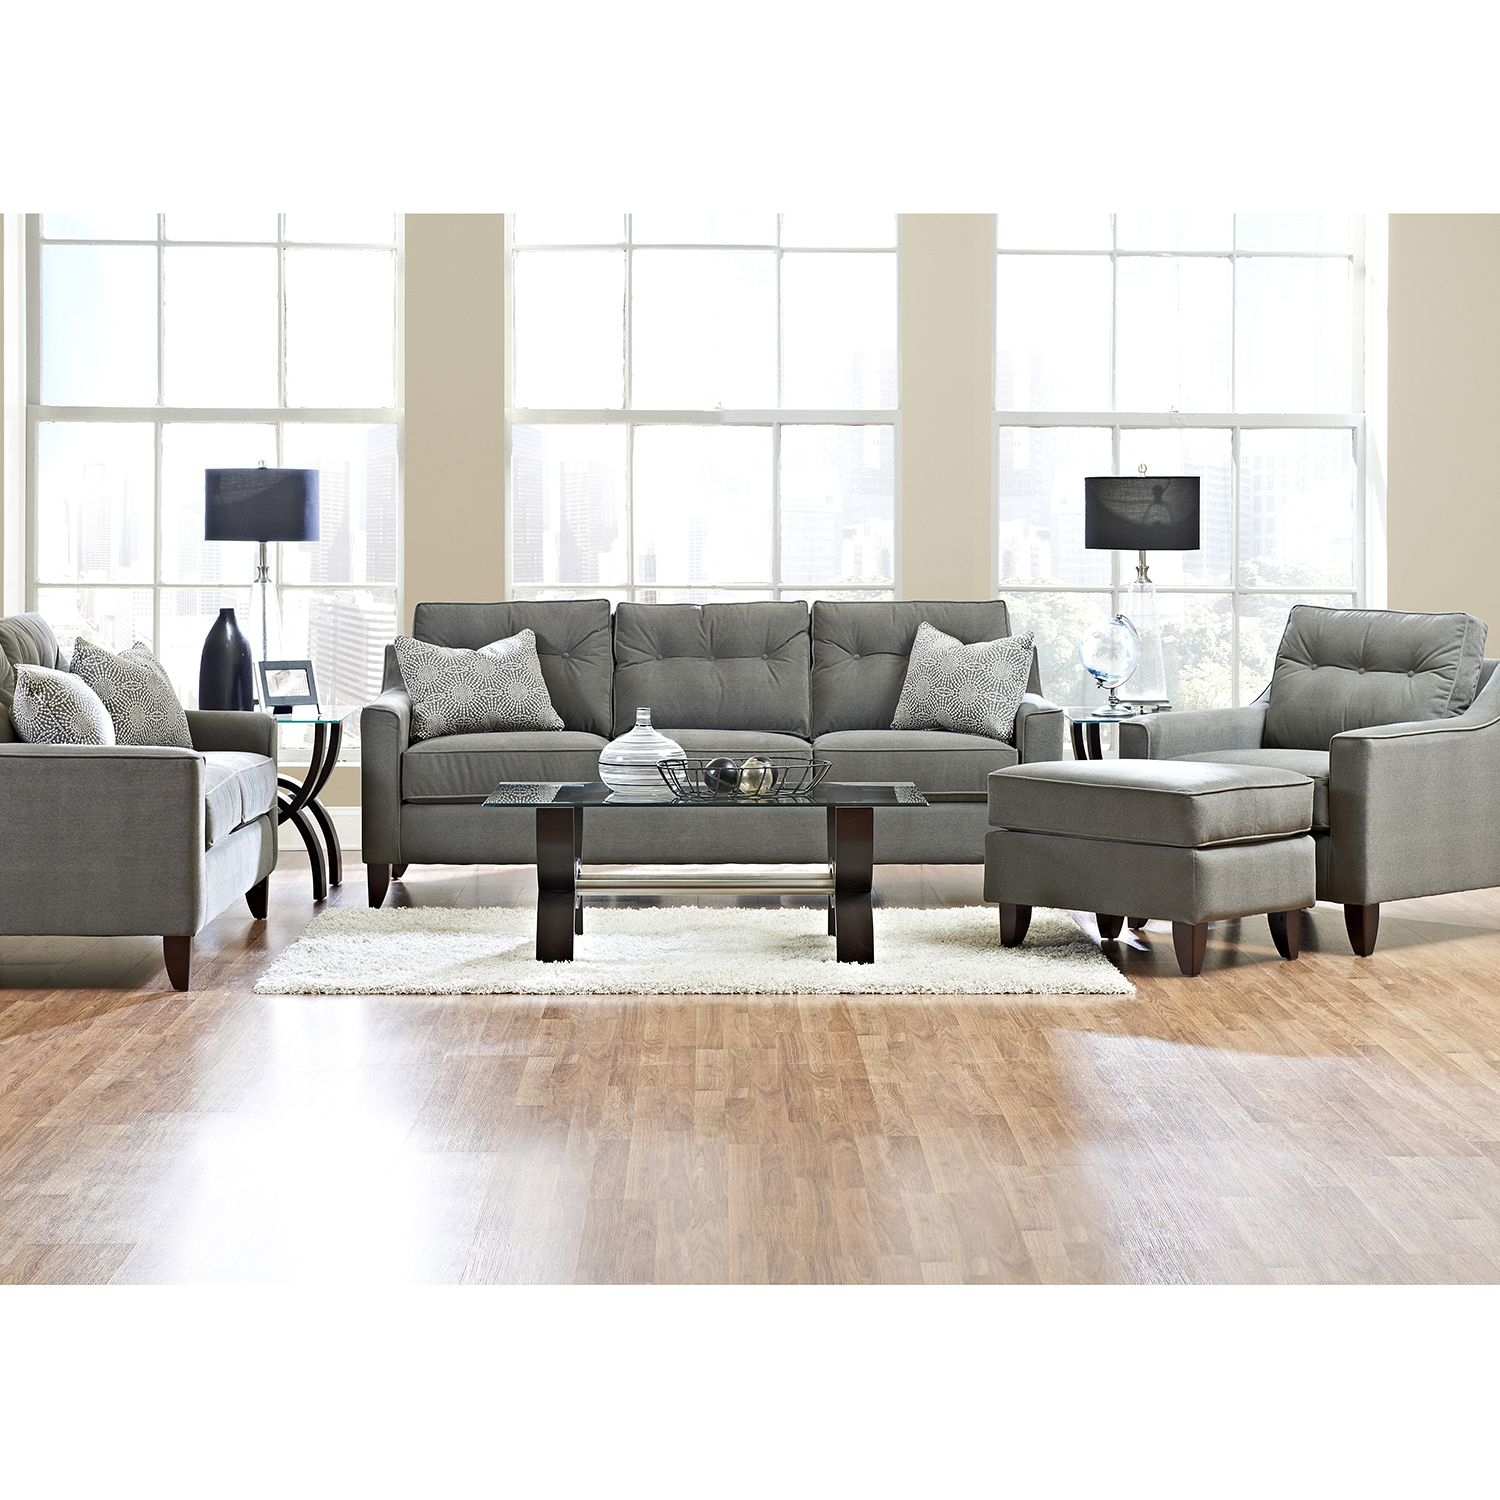 Best Of Red Sectional Sofa Aarons – Sectional Sofas Intended For Sectional Sofas At Aarons (View 7 of 15)